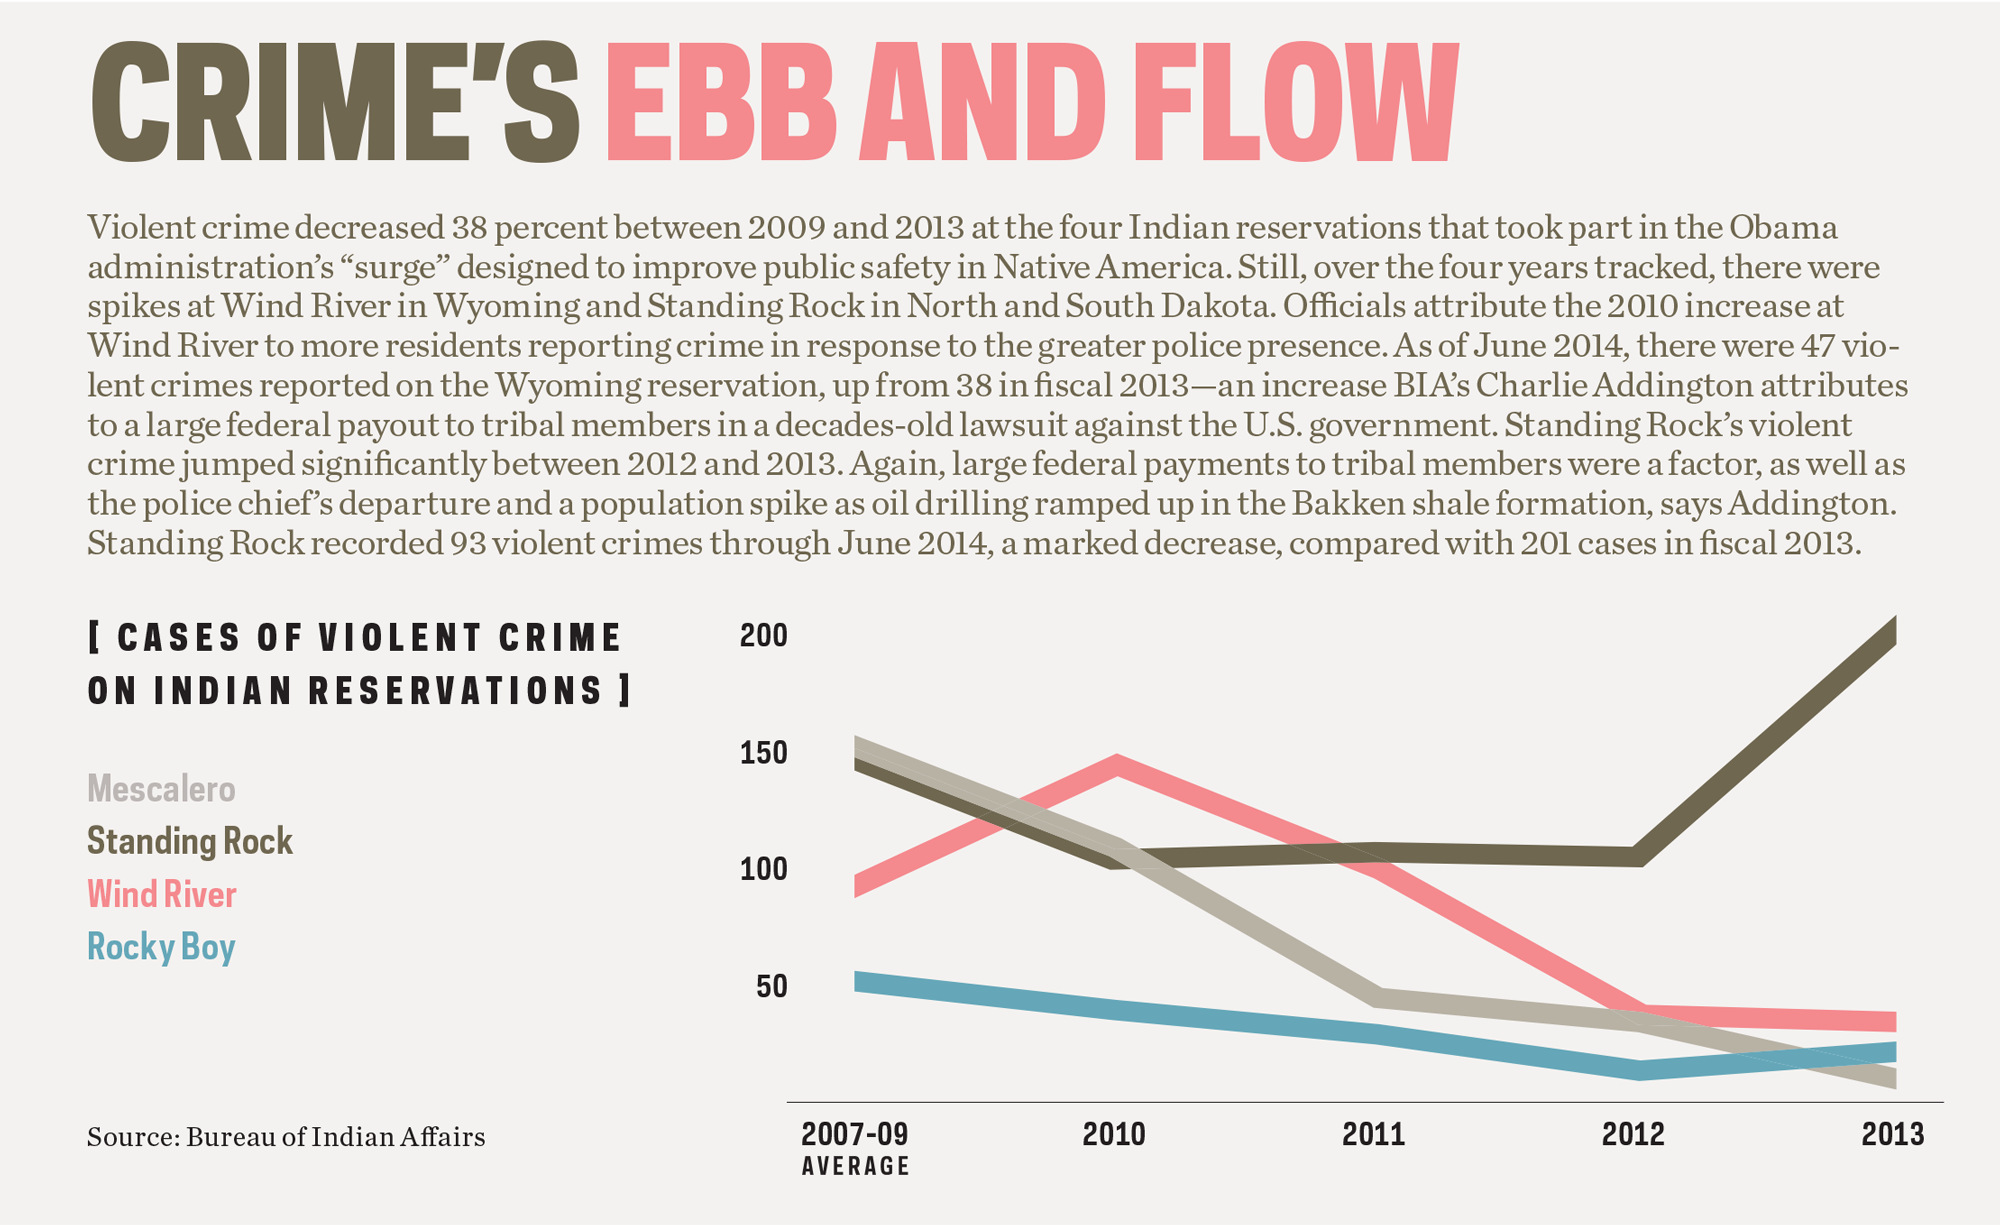 Crime's Ebb and Flow (chart showing cases of violent crime on Indian reservations from 2007-2013